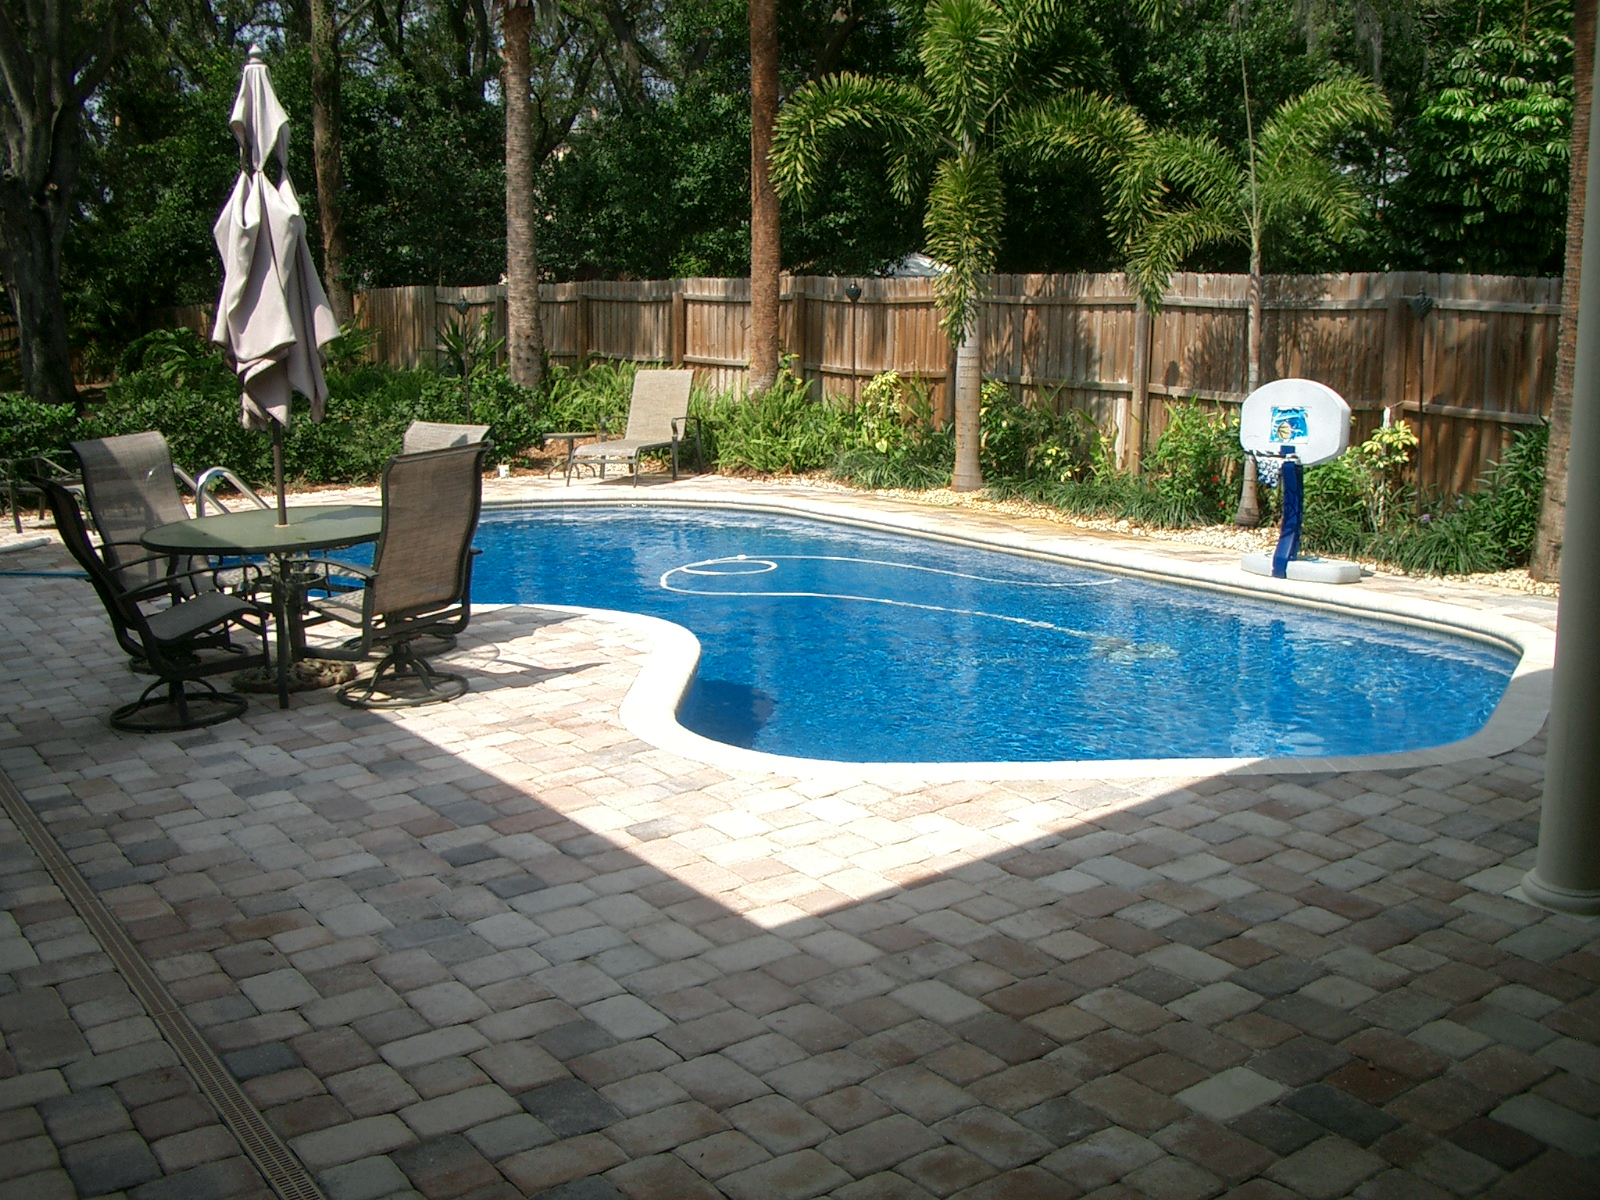 backyard pool landscape ideas photo - 1